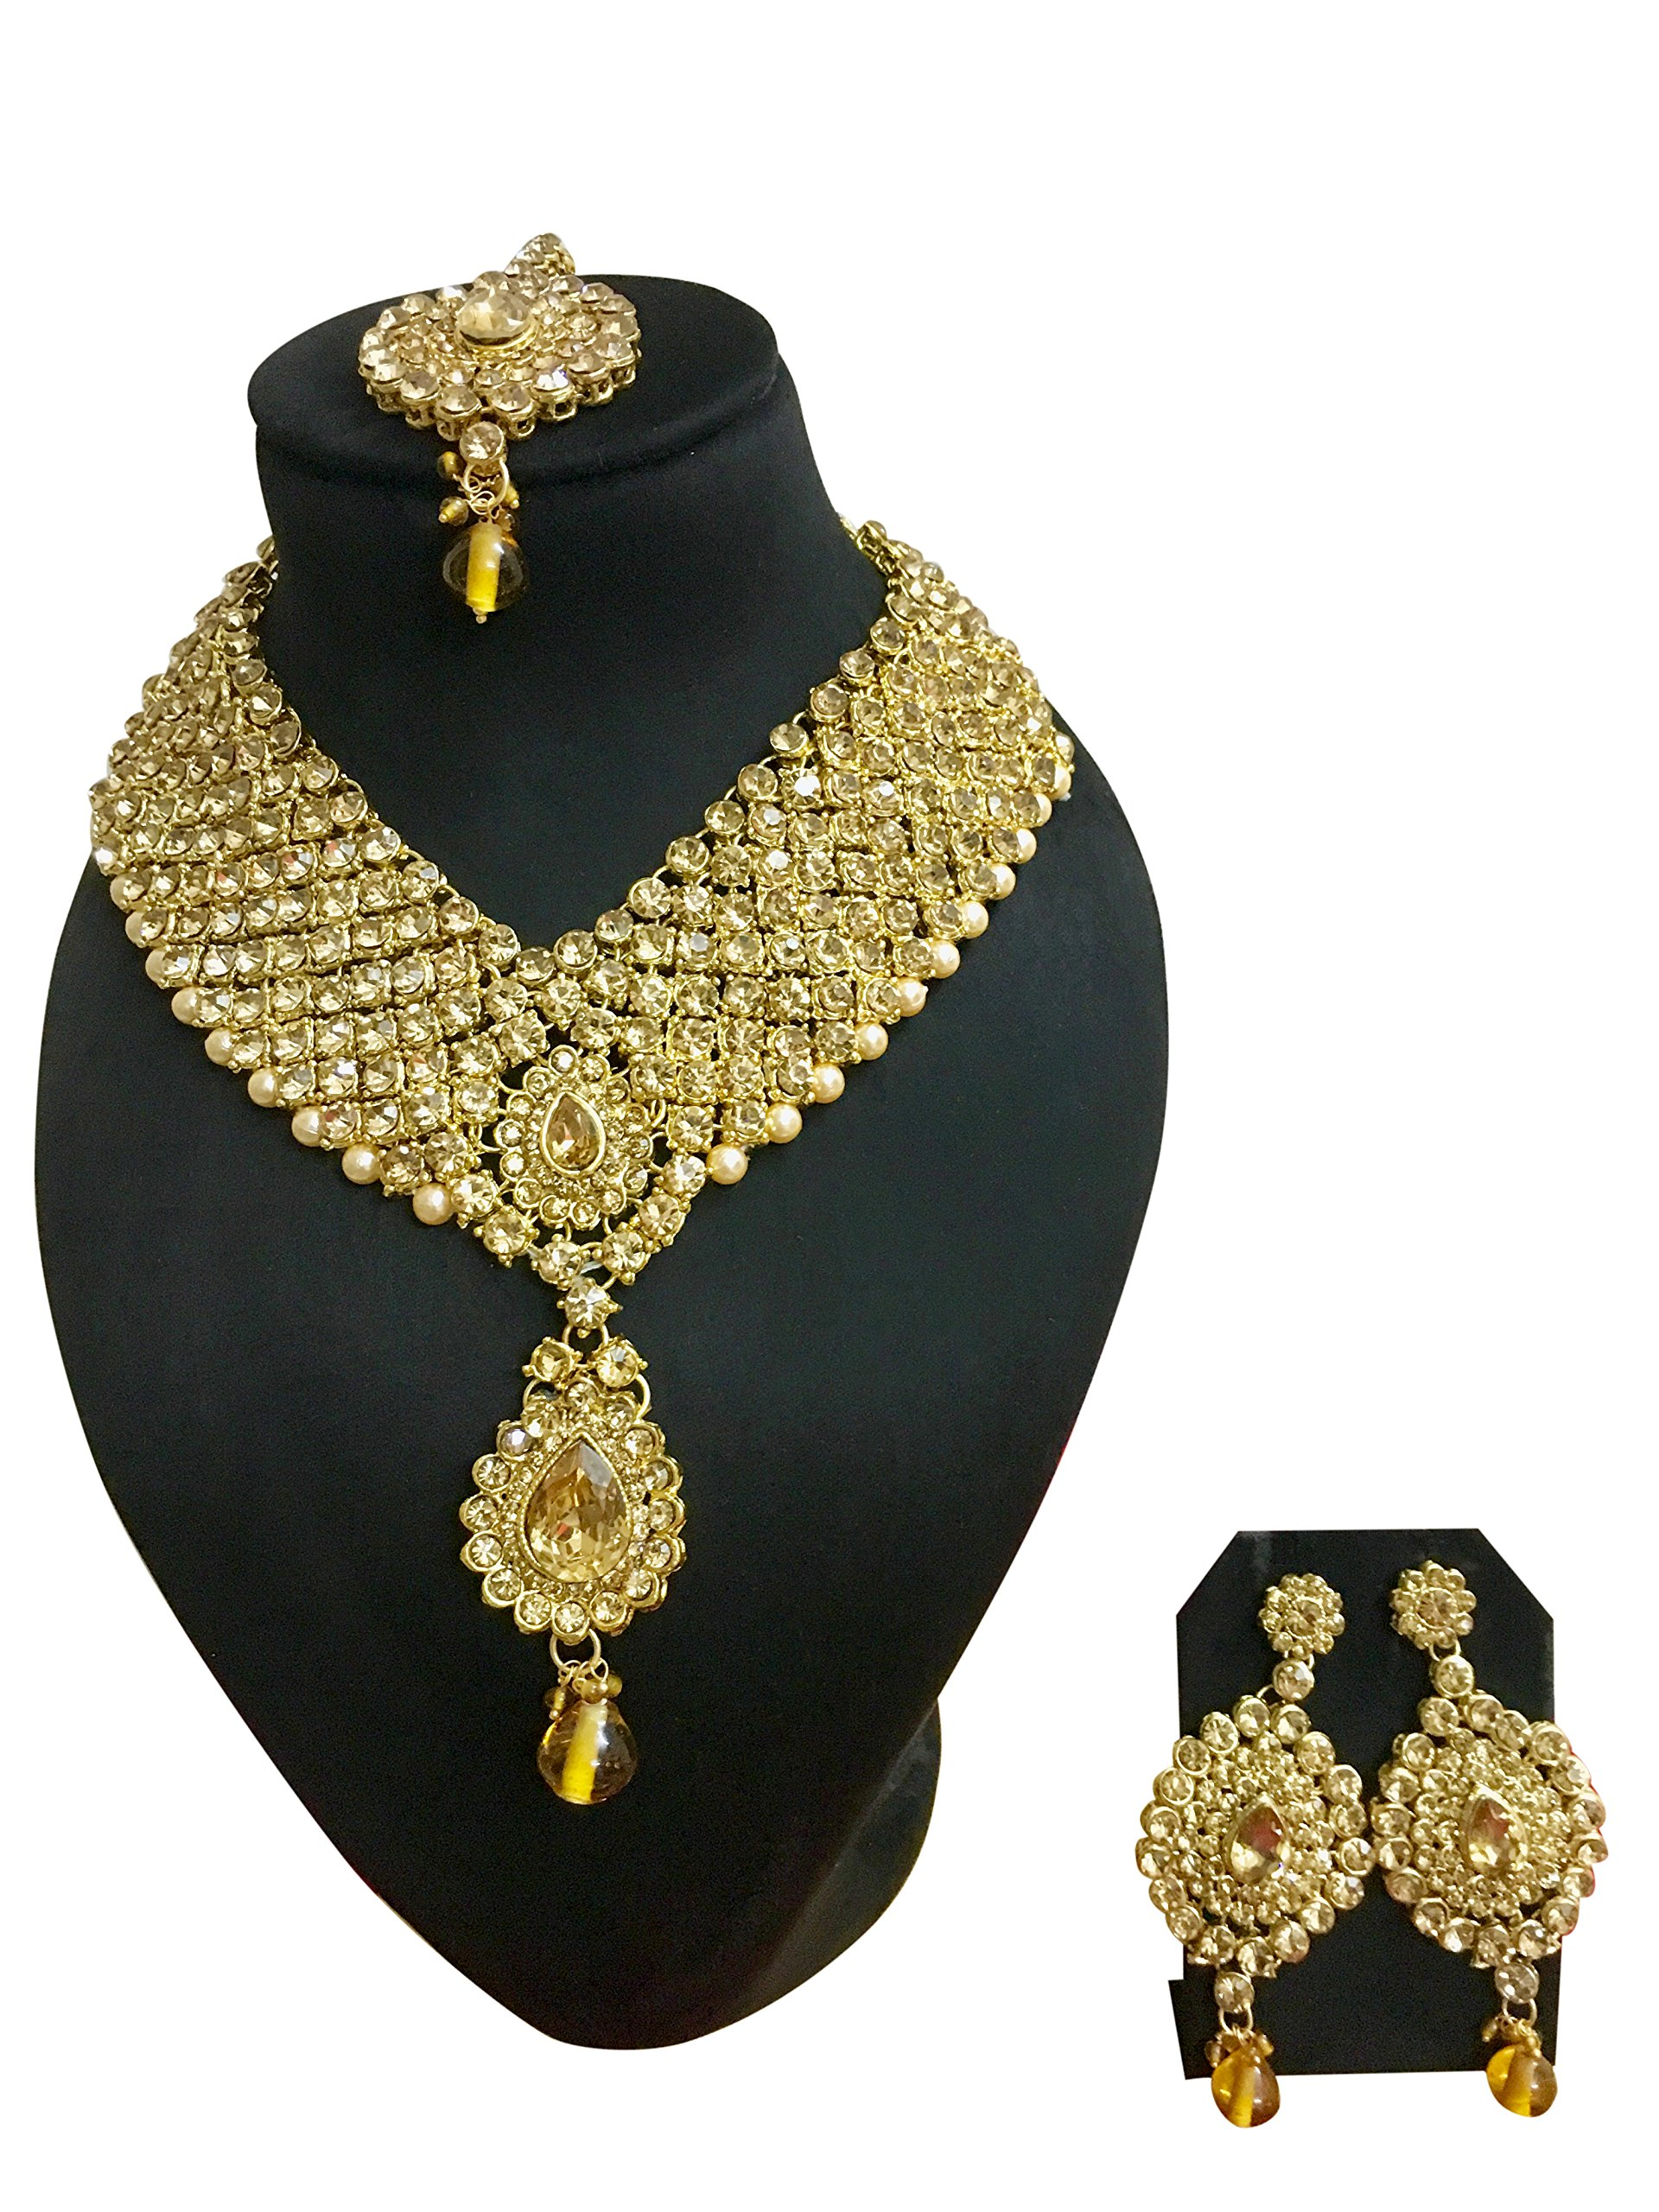 CROWN JEWEL Indian Bollywood Style Diamante Pearl Gold Tone Bridal Fashion Jewelry Set For Women (Gold)